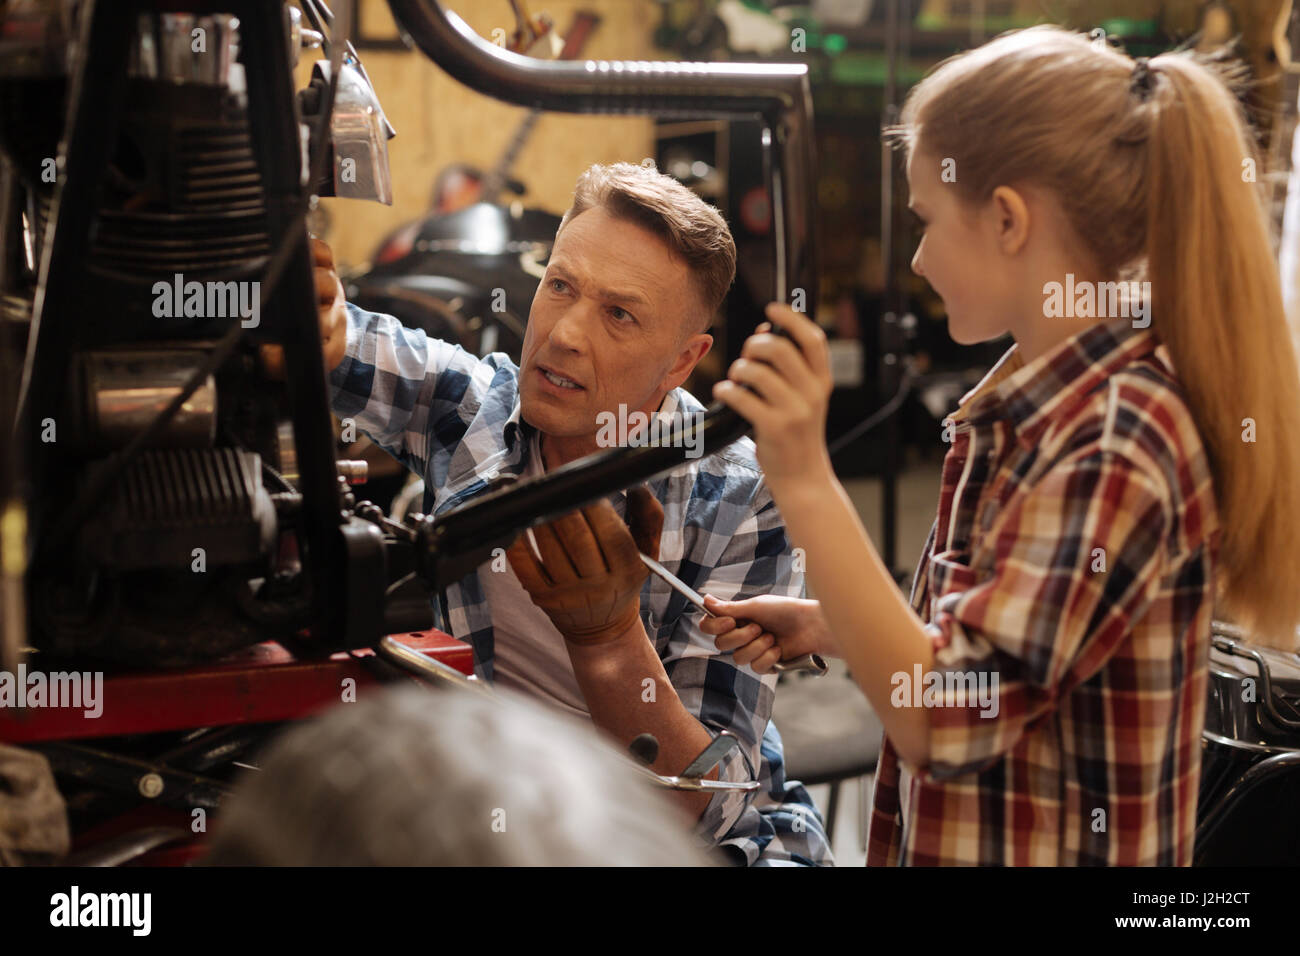 Trained skillful mechanic needing a special tool - Stock Image